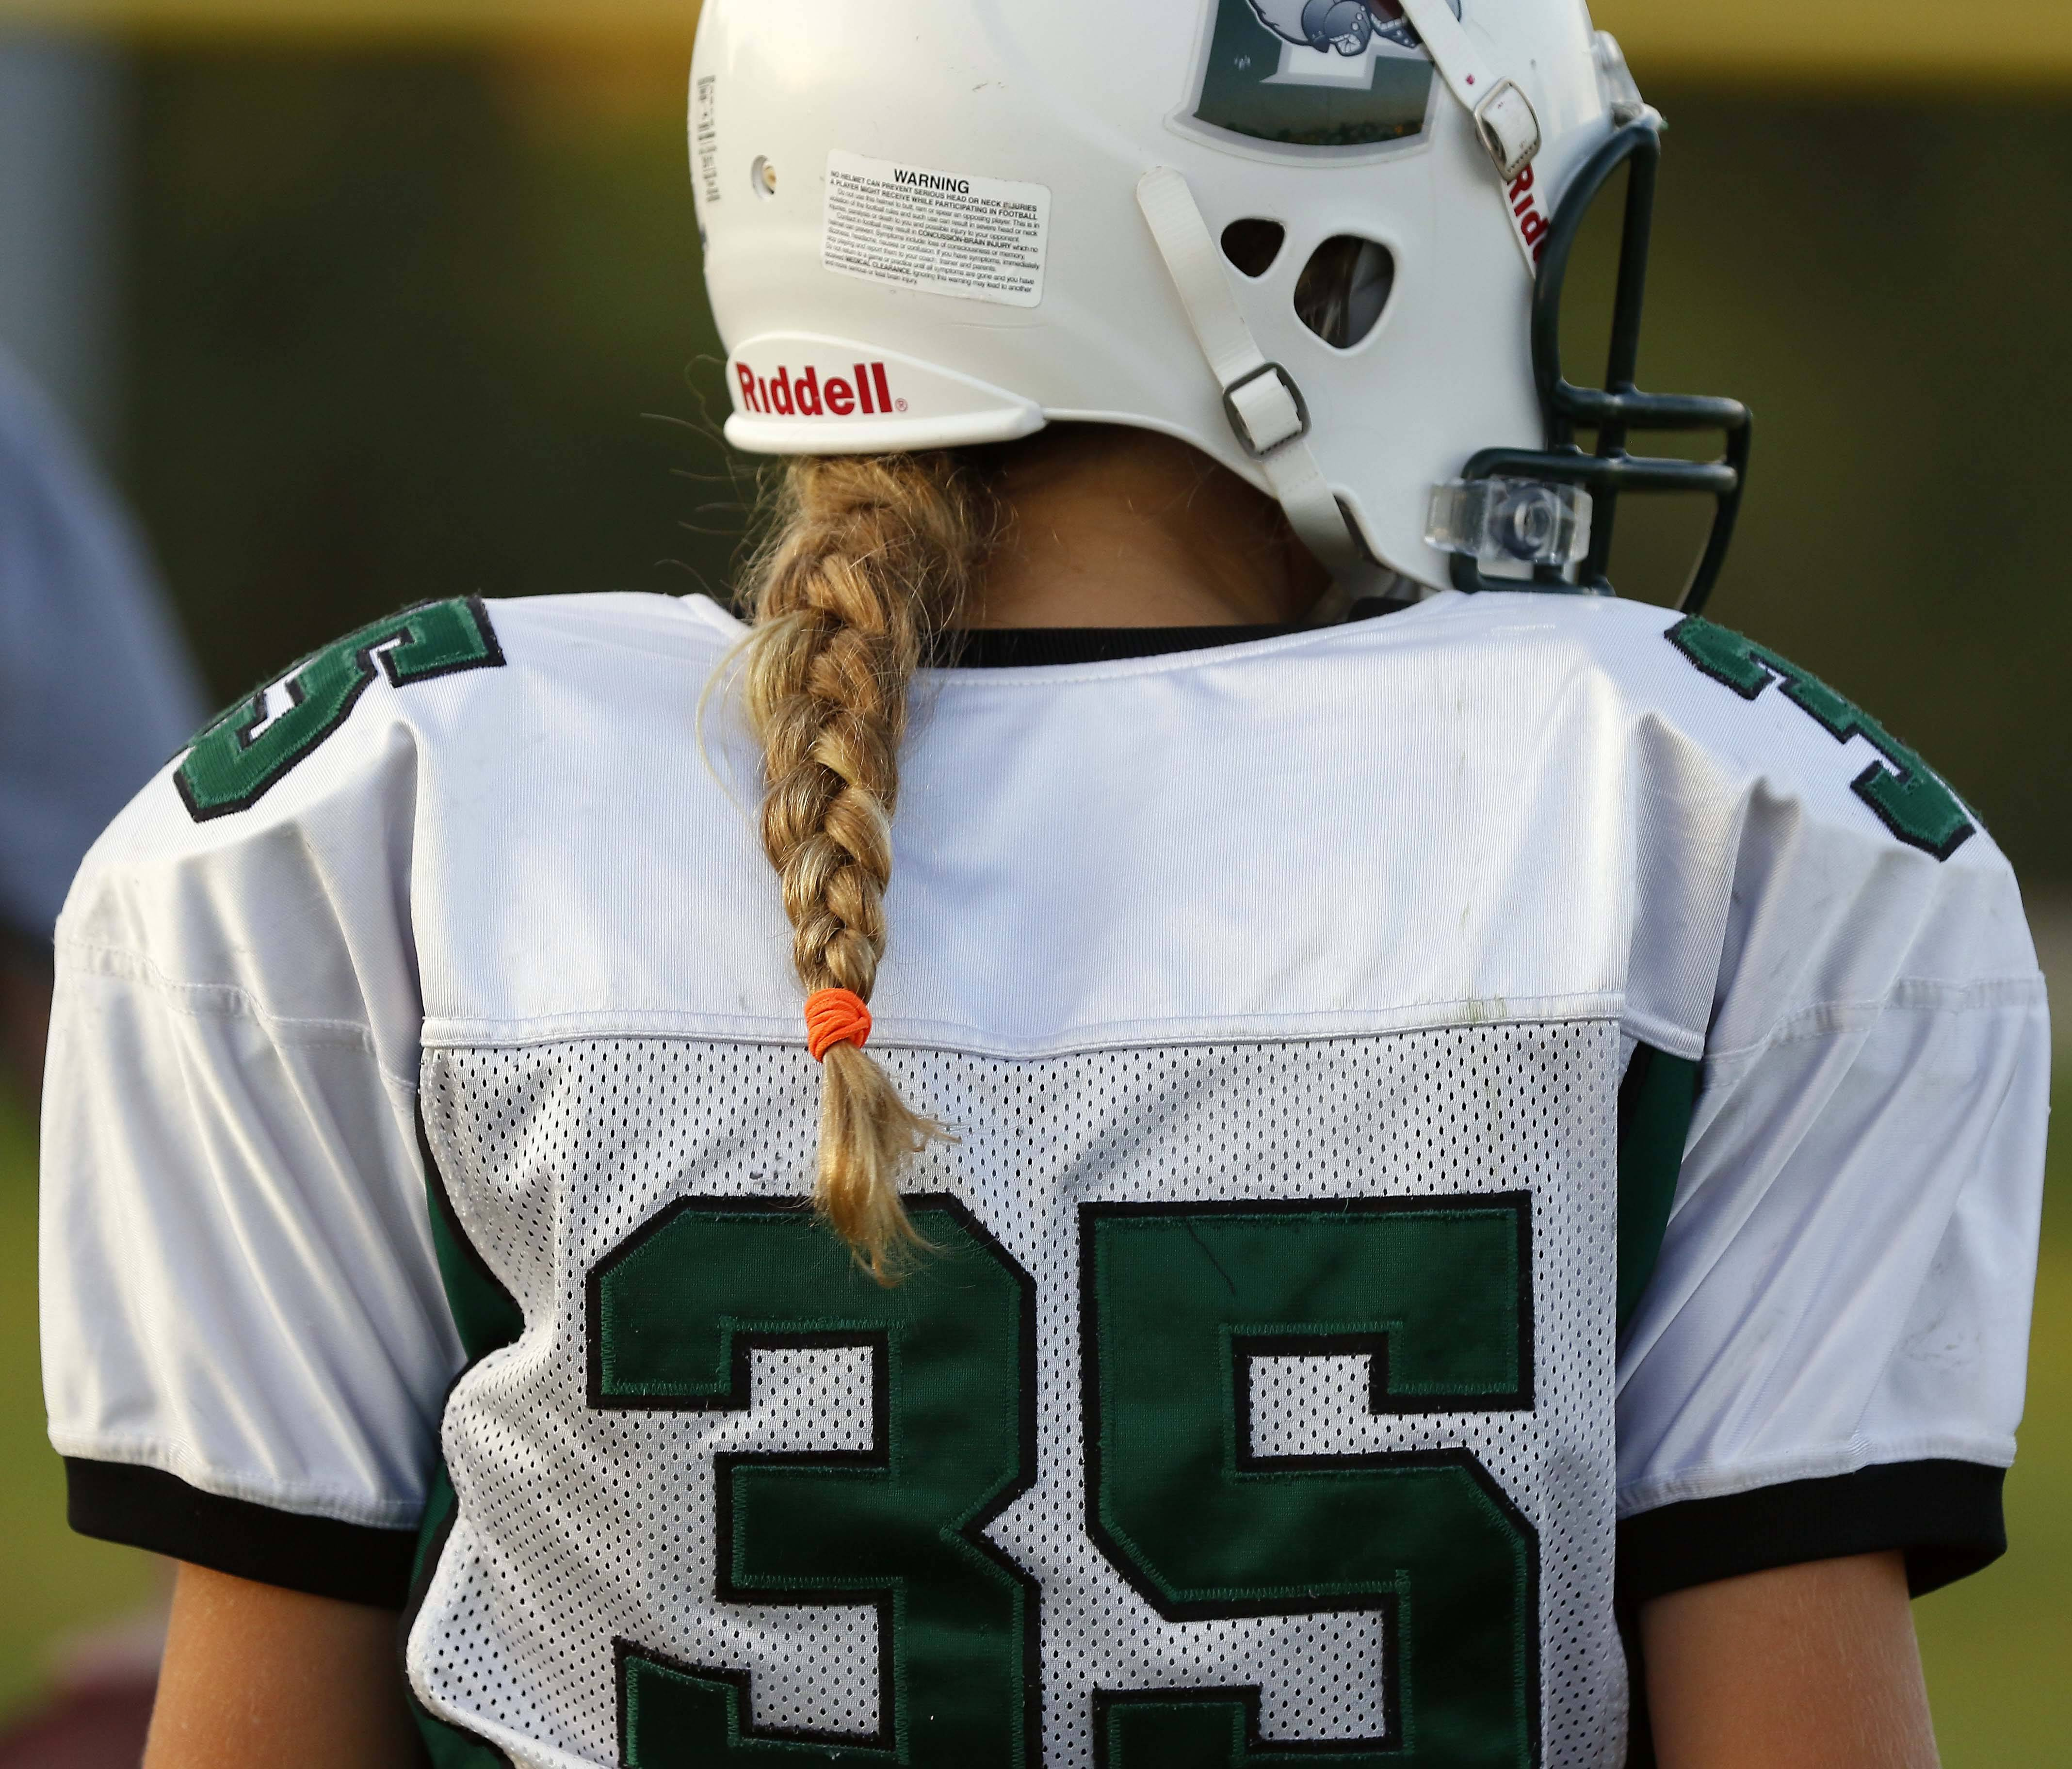 """They know they are playing against girls,"" football coach Joe Kenny said of the male players. ""They treat them like anybody else and they don't go easy on them."" Shown is Crusaders player Sophia Olech."